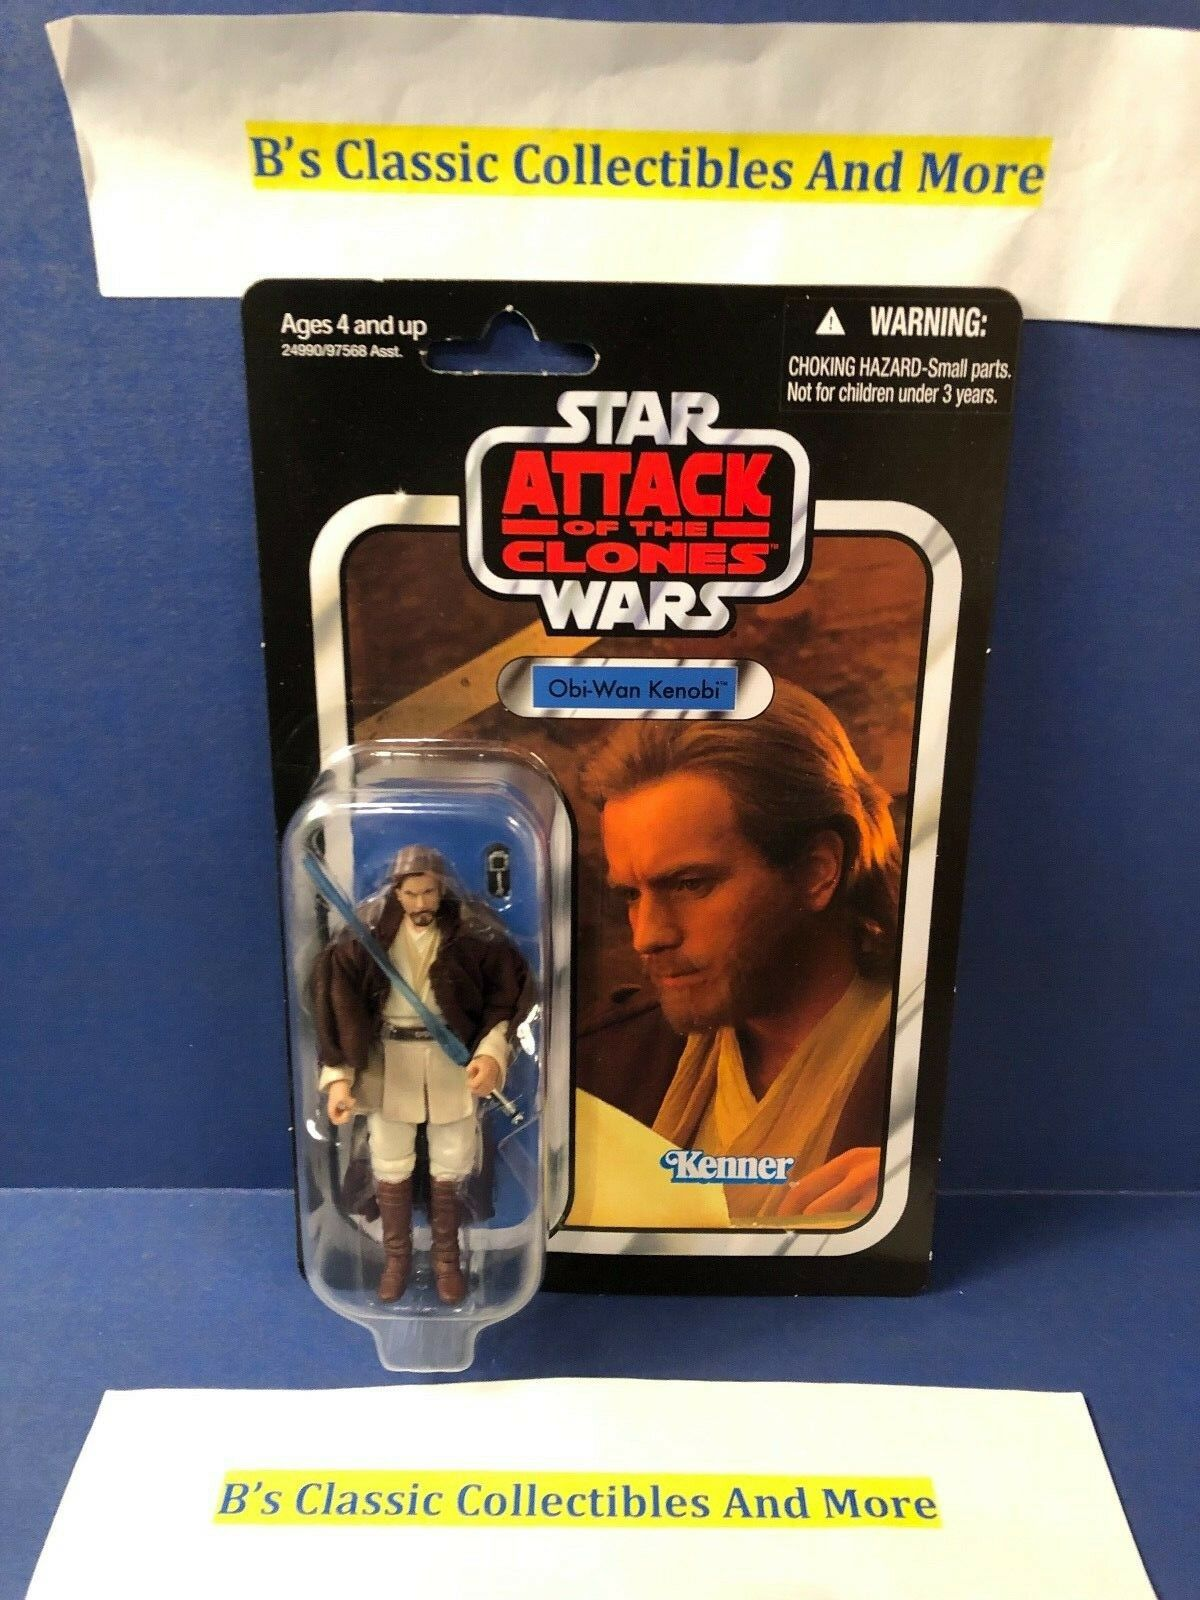 Star Wars Obi-Wan Kenobi Figure The Vintage Collection VC31 AOTC New